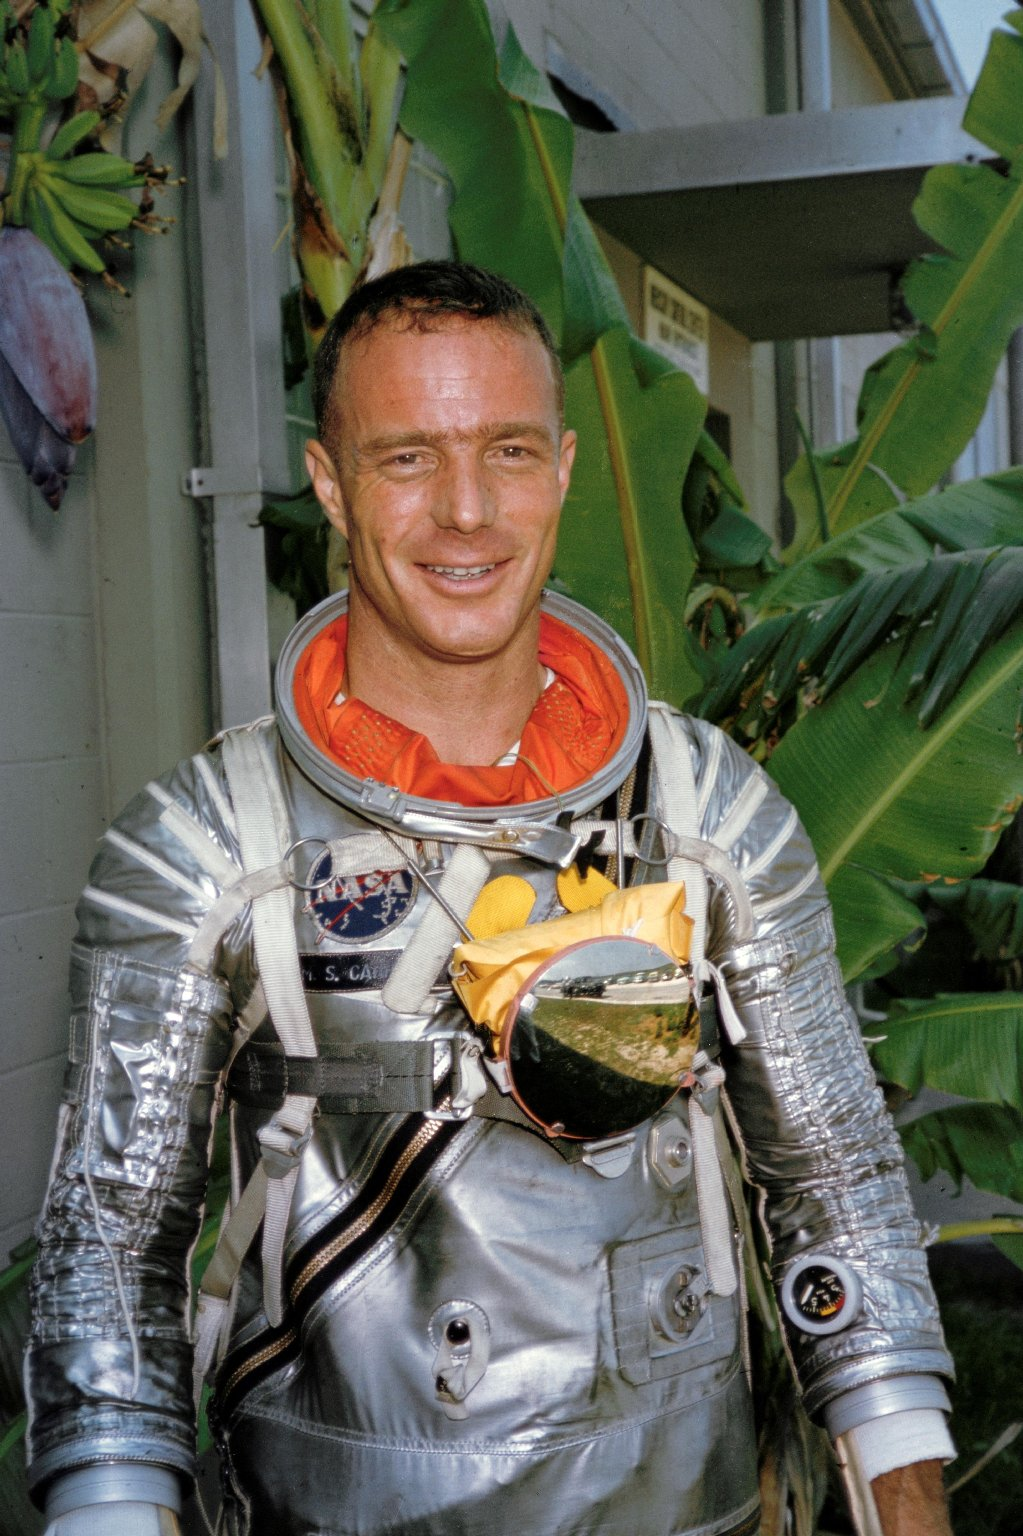 Astronaut Scott Carpenter in a Pressure Suit